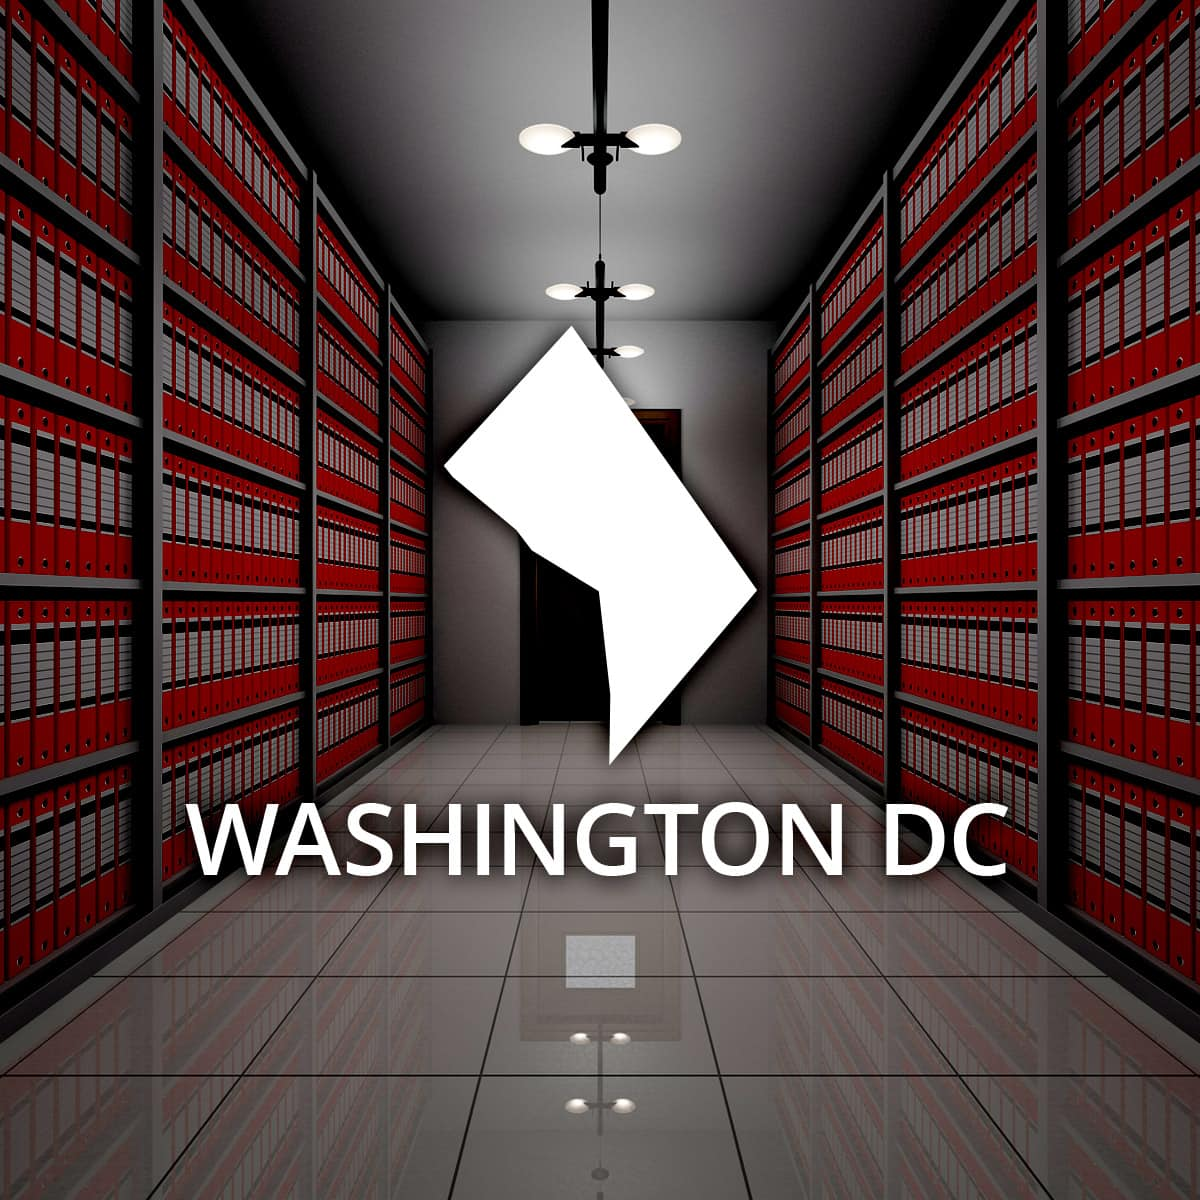 District of Columbia Public Records